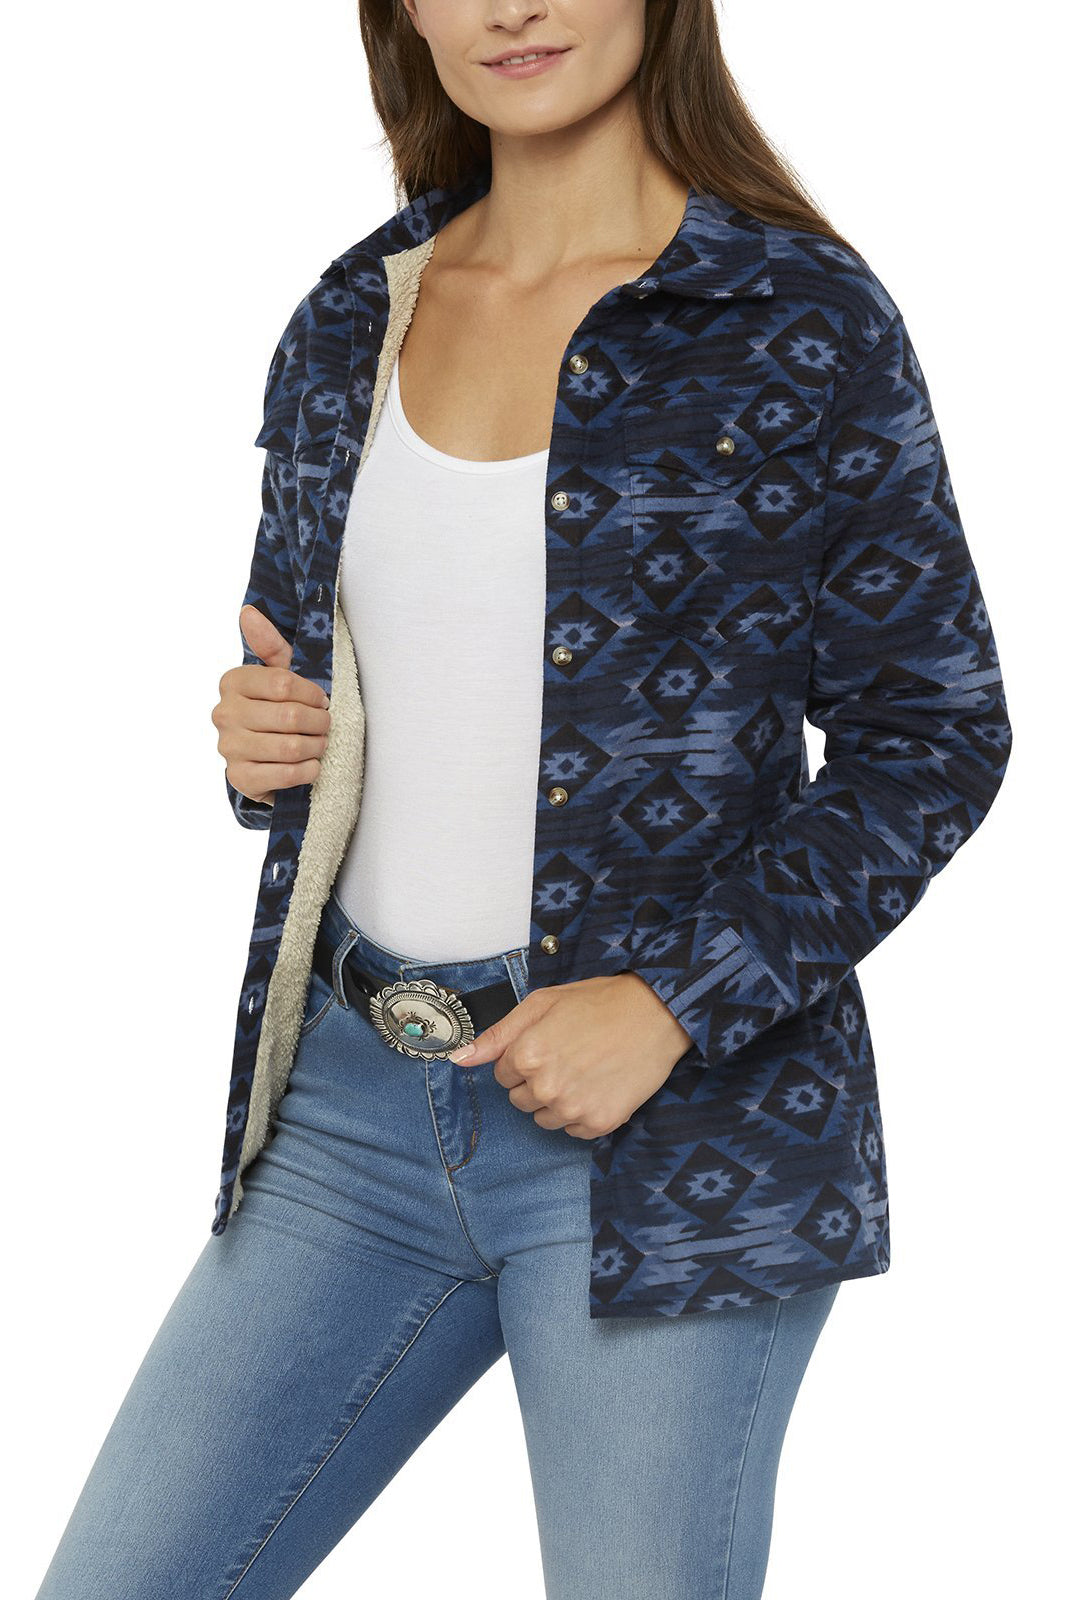 Women's Sherpa Lined Aztec Flannel Shirt | Ely Cattleman